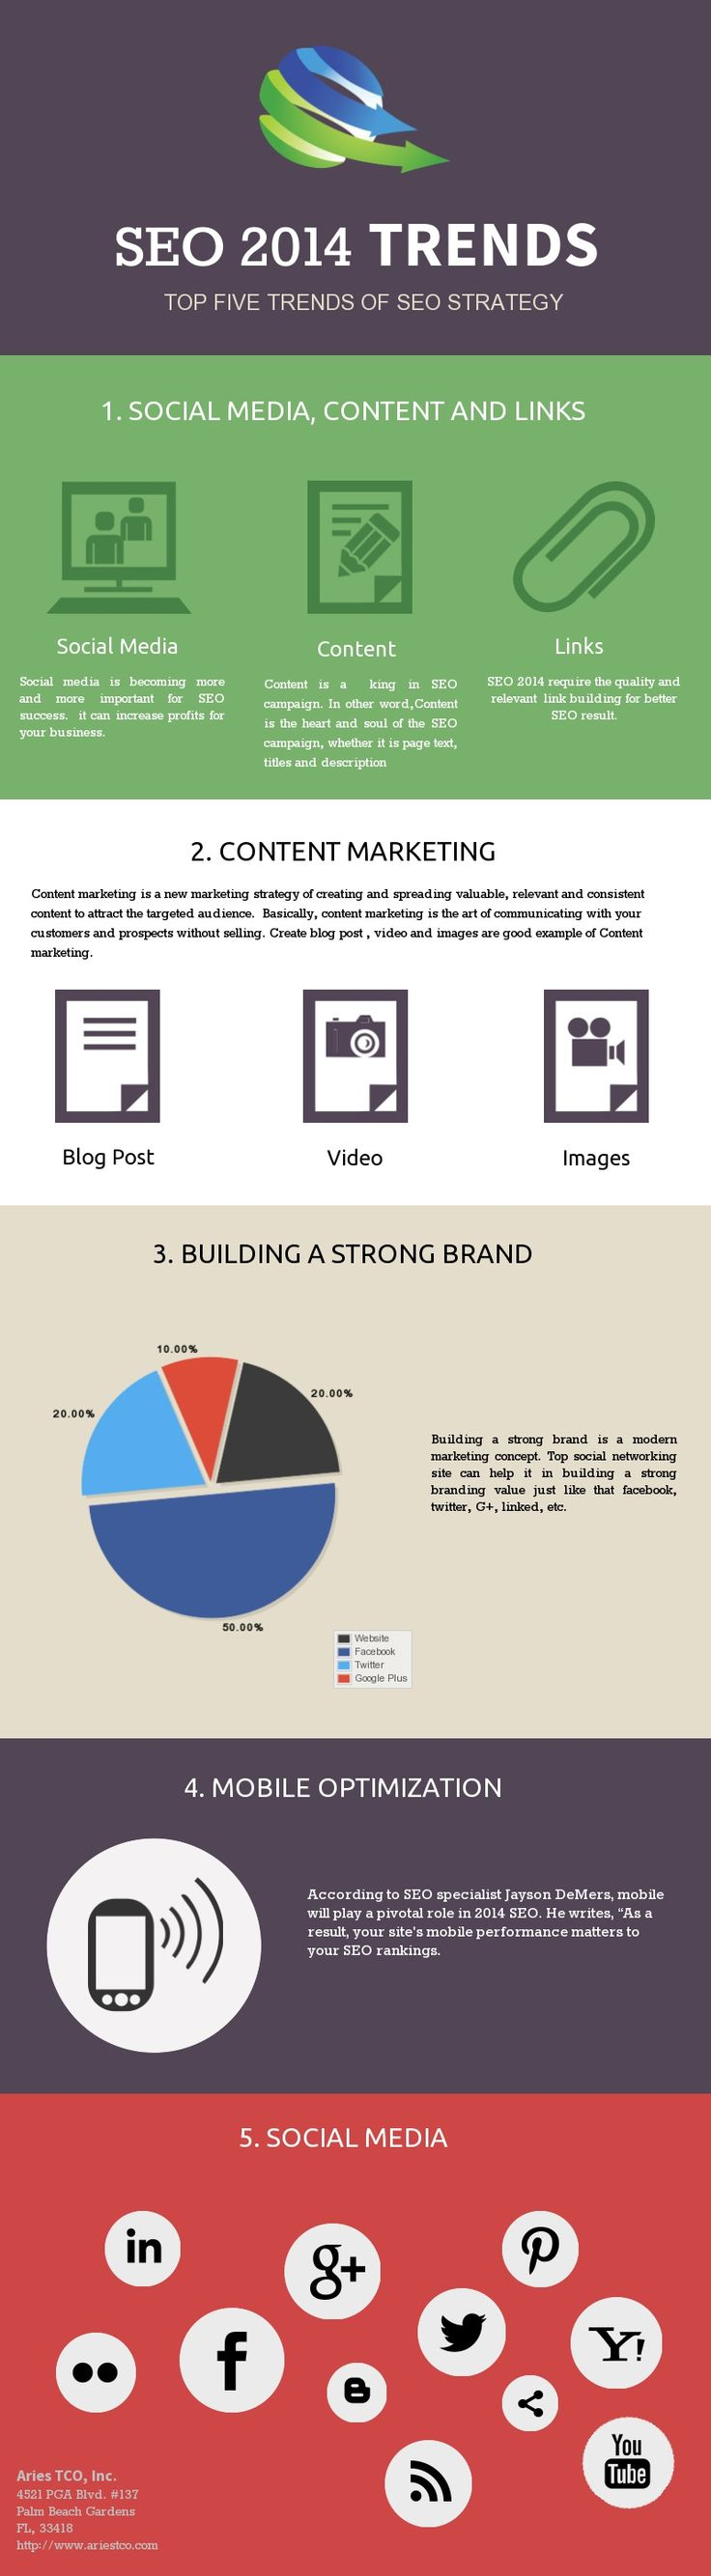 Top Five Trends of Seo Strategy 2014   #infographic #SEO #Trends